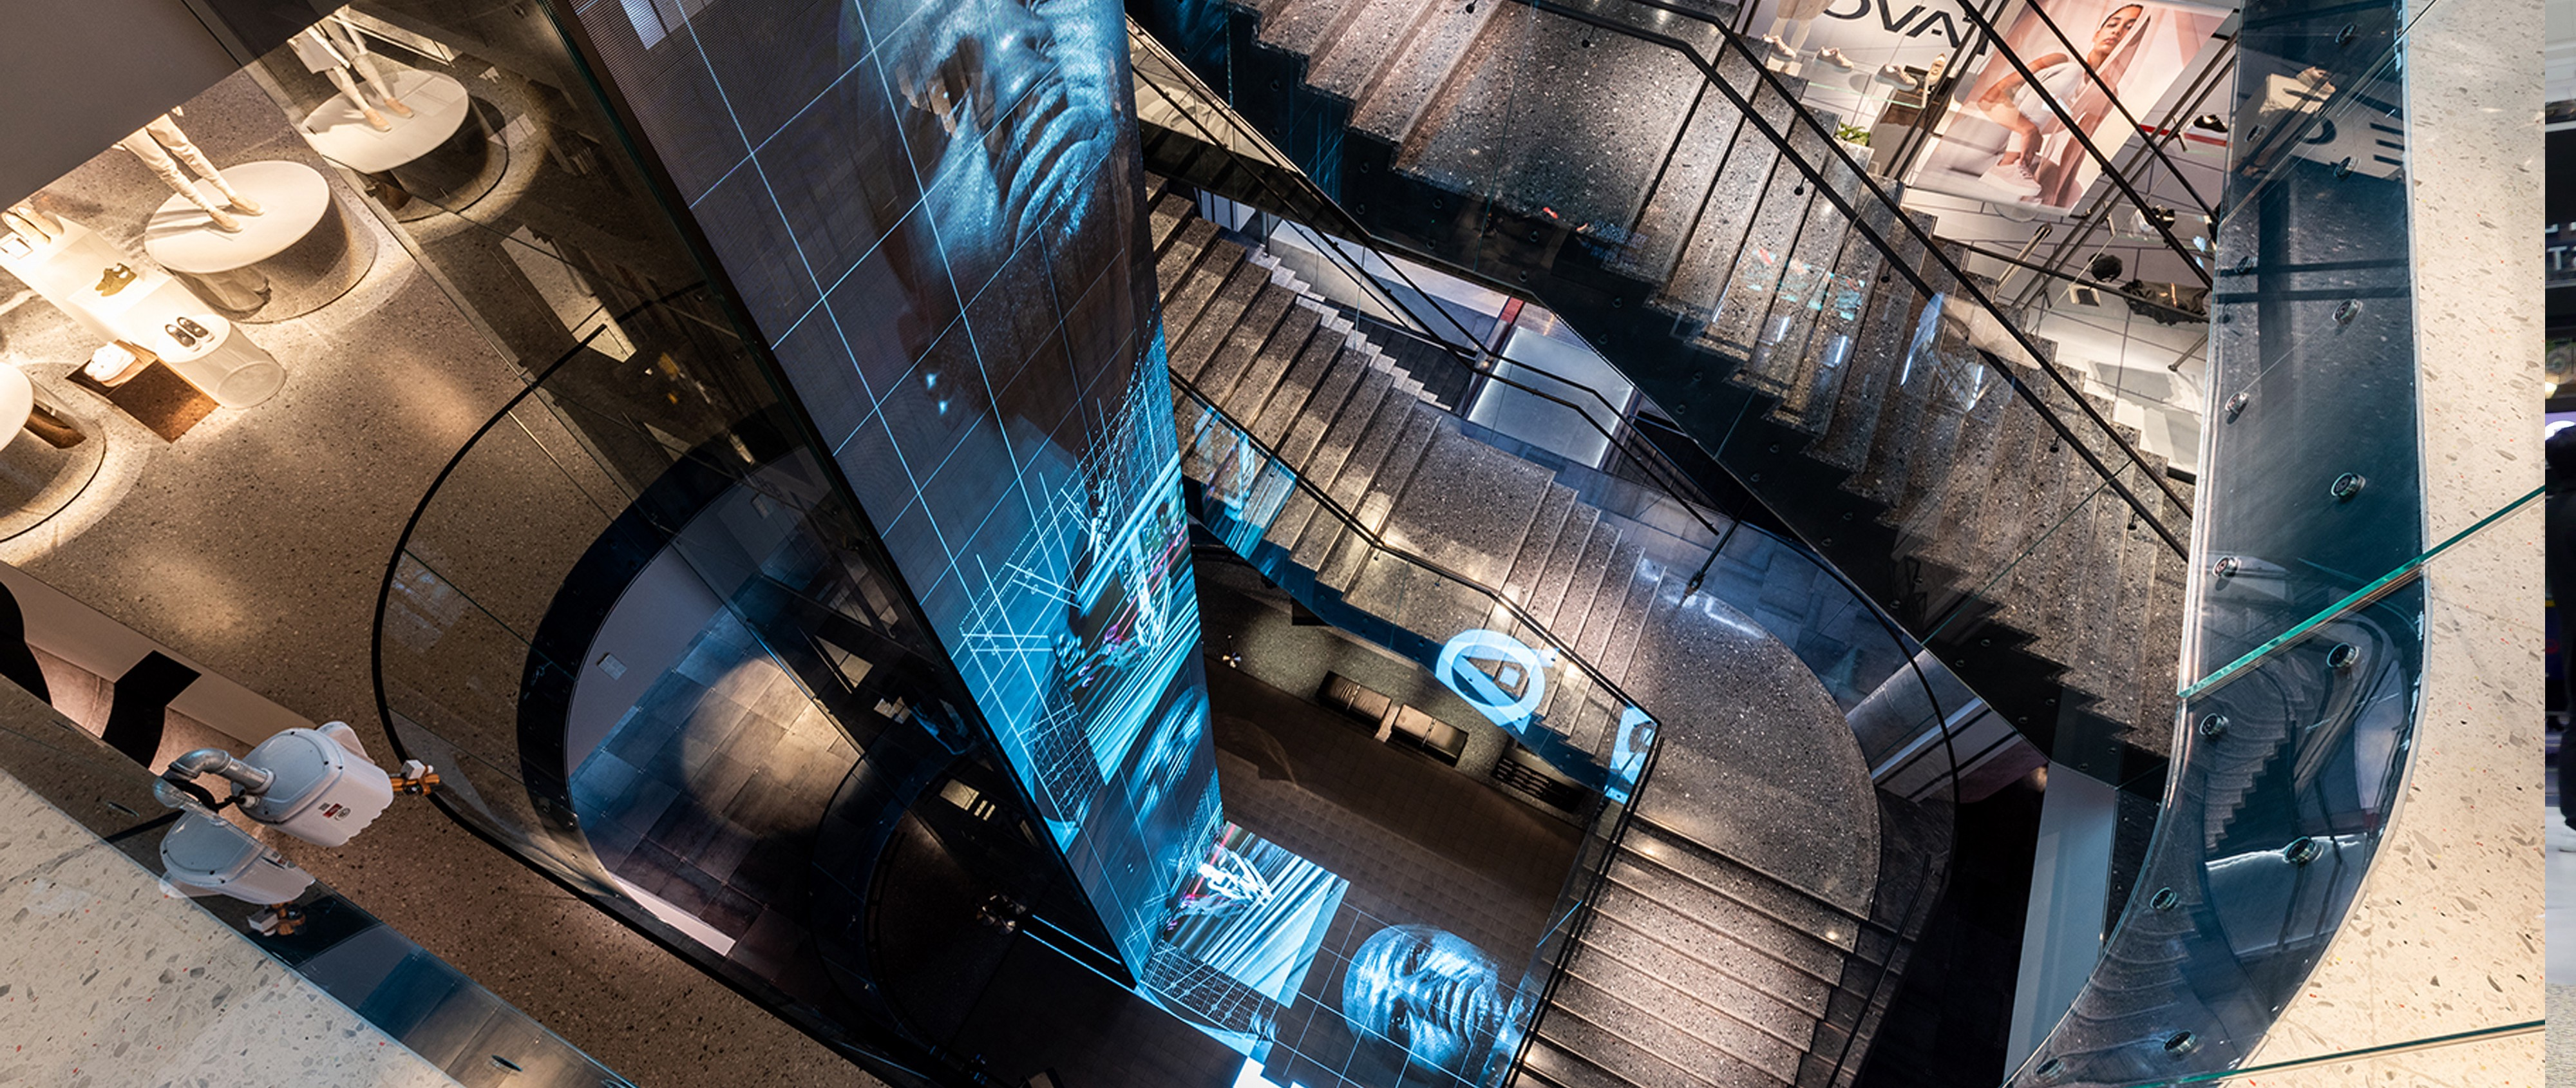 Celo Melodrama auditoría  Retail Case-study: Nike's House of Innovation | by Torvits + Trench | out  of space | Medium